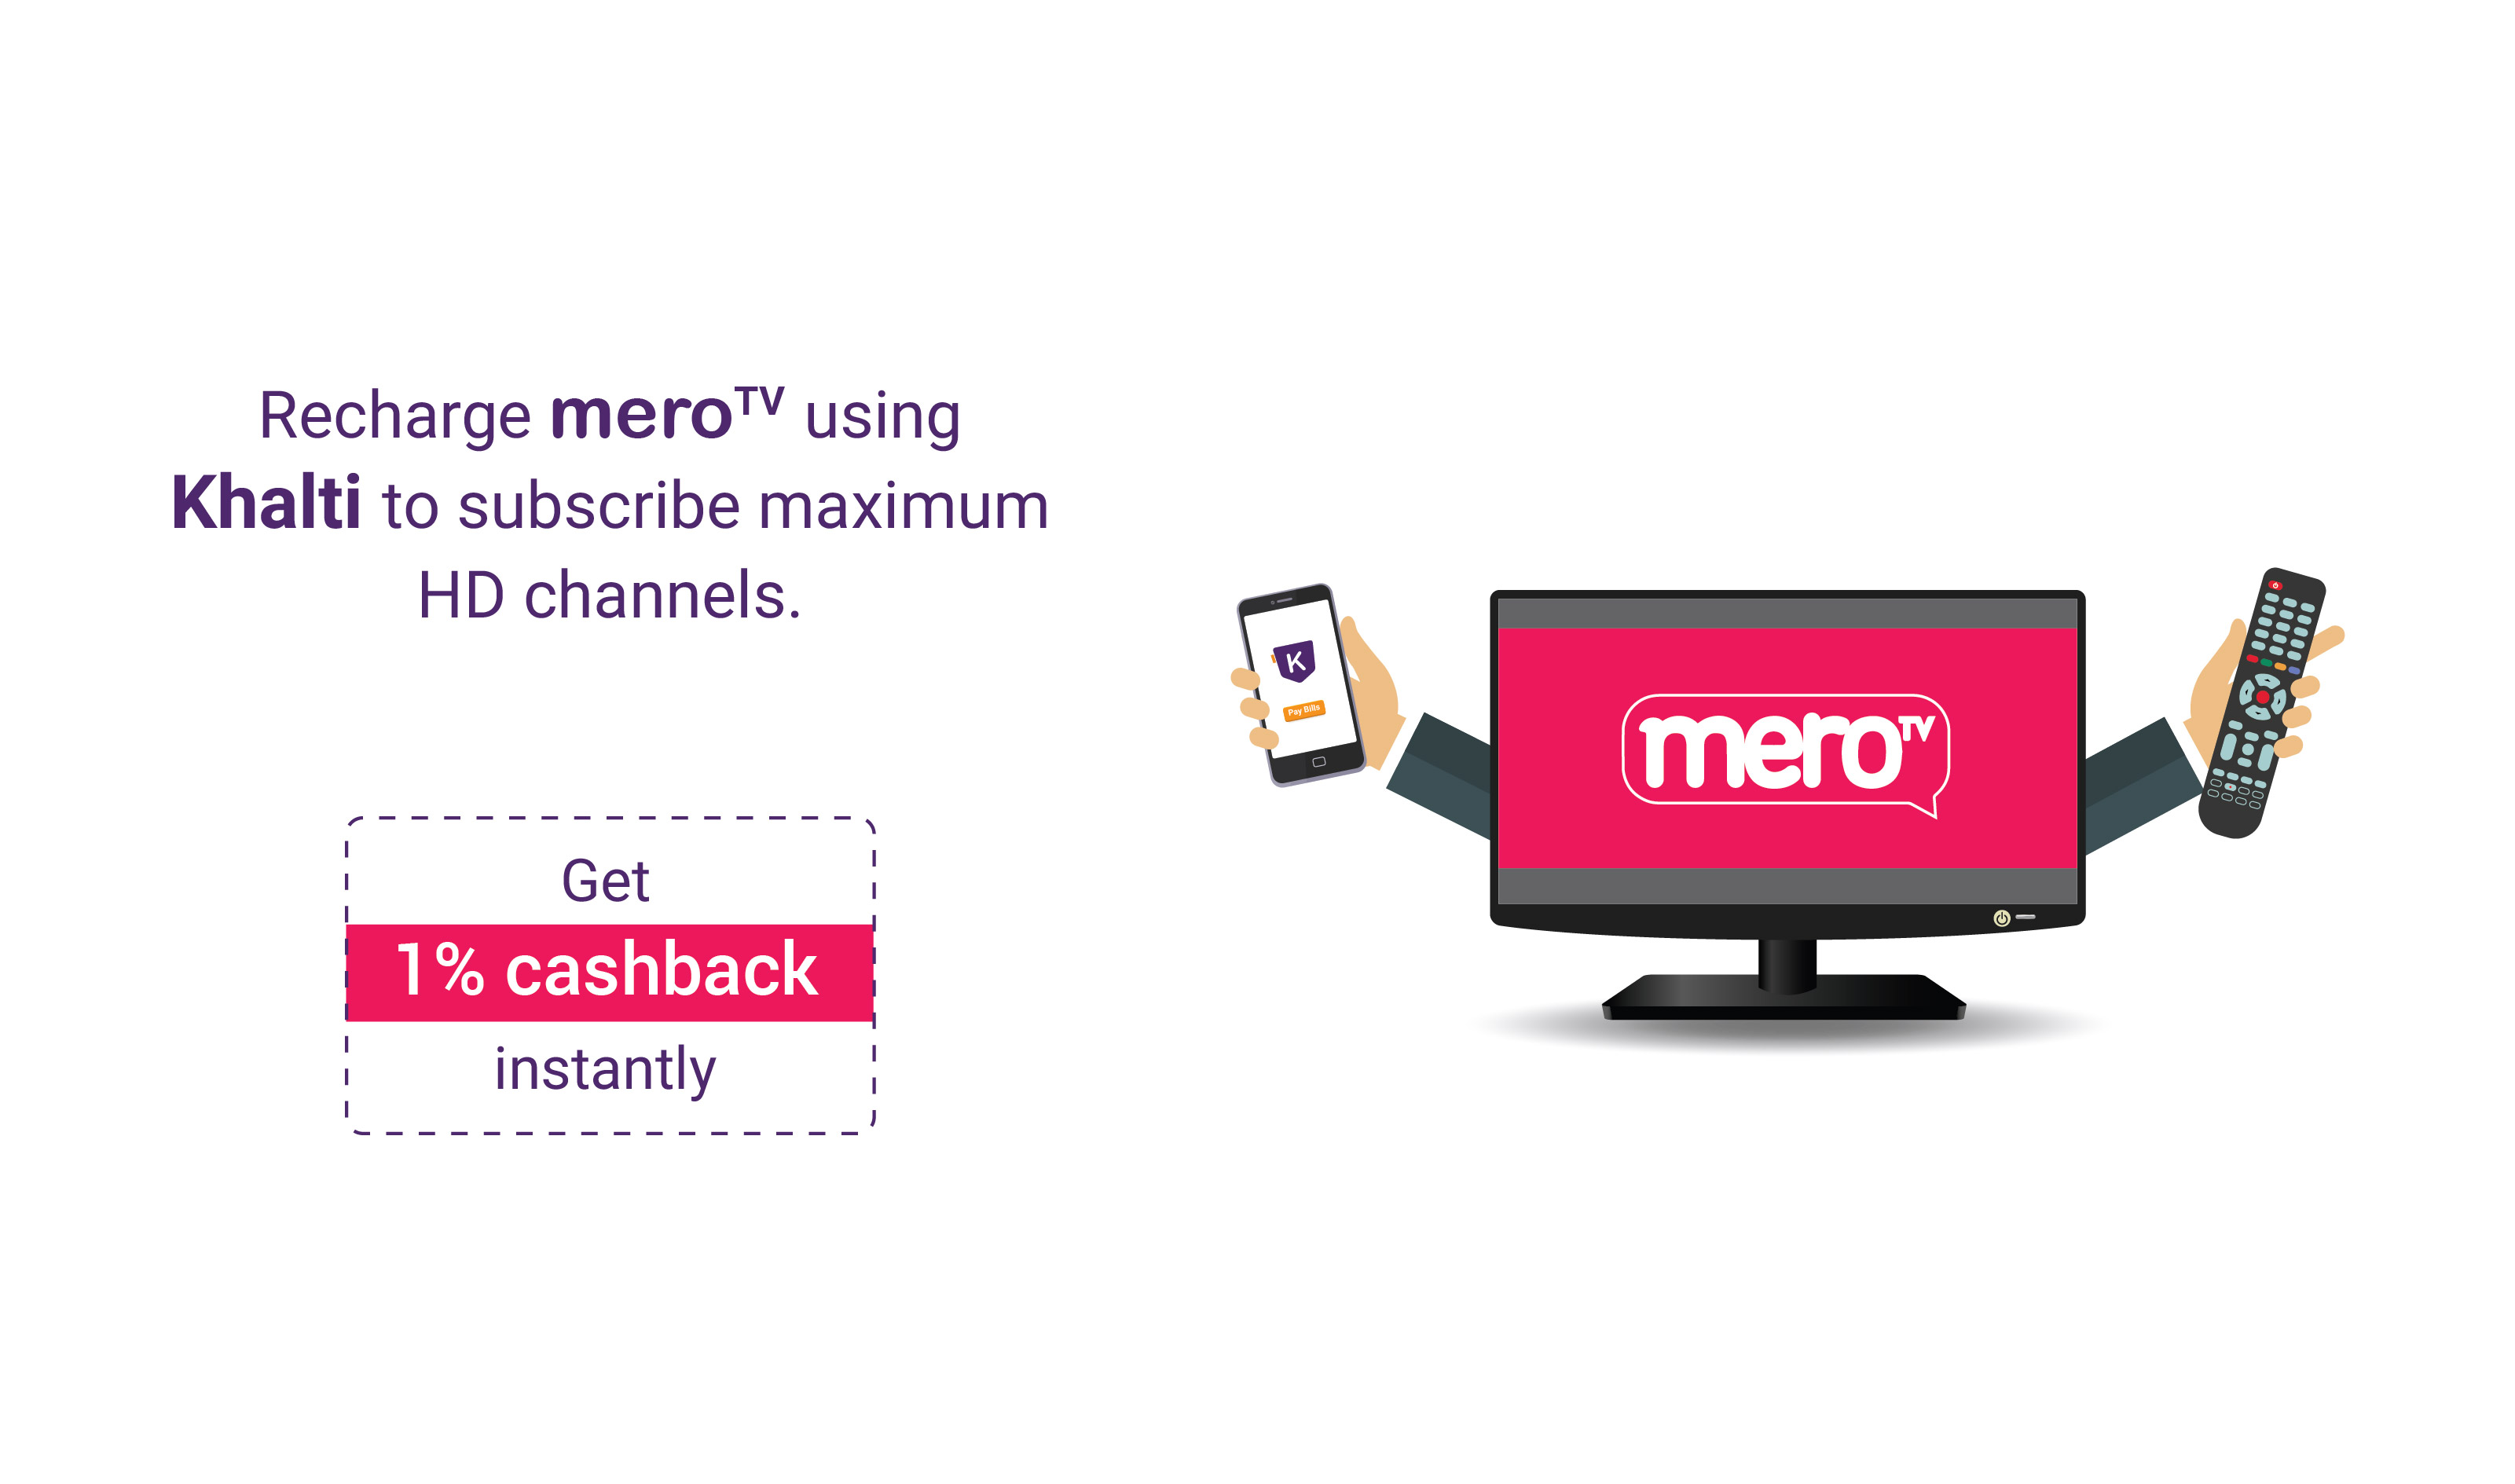 How to recharge Mero TV online using Khalti?